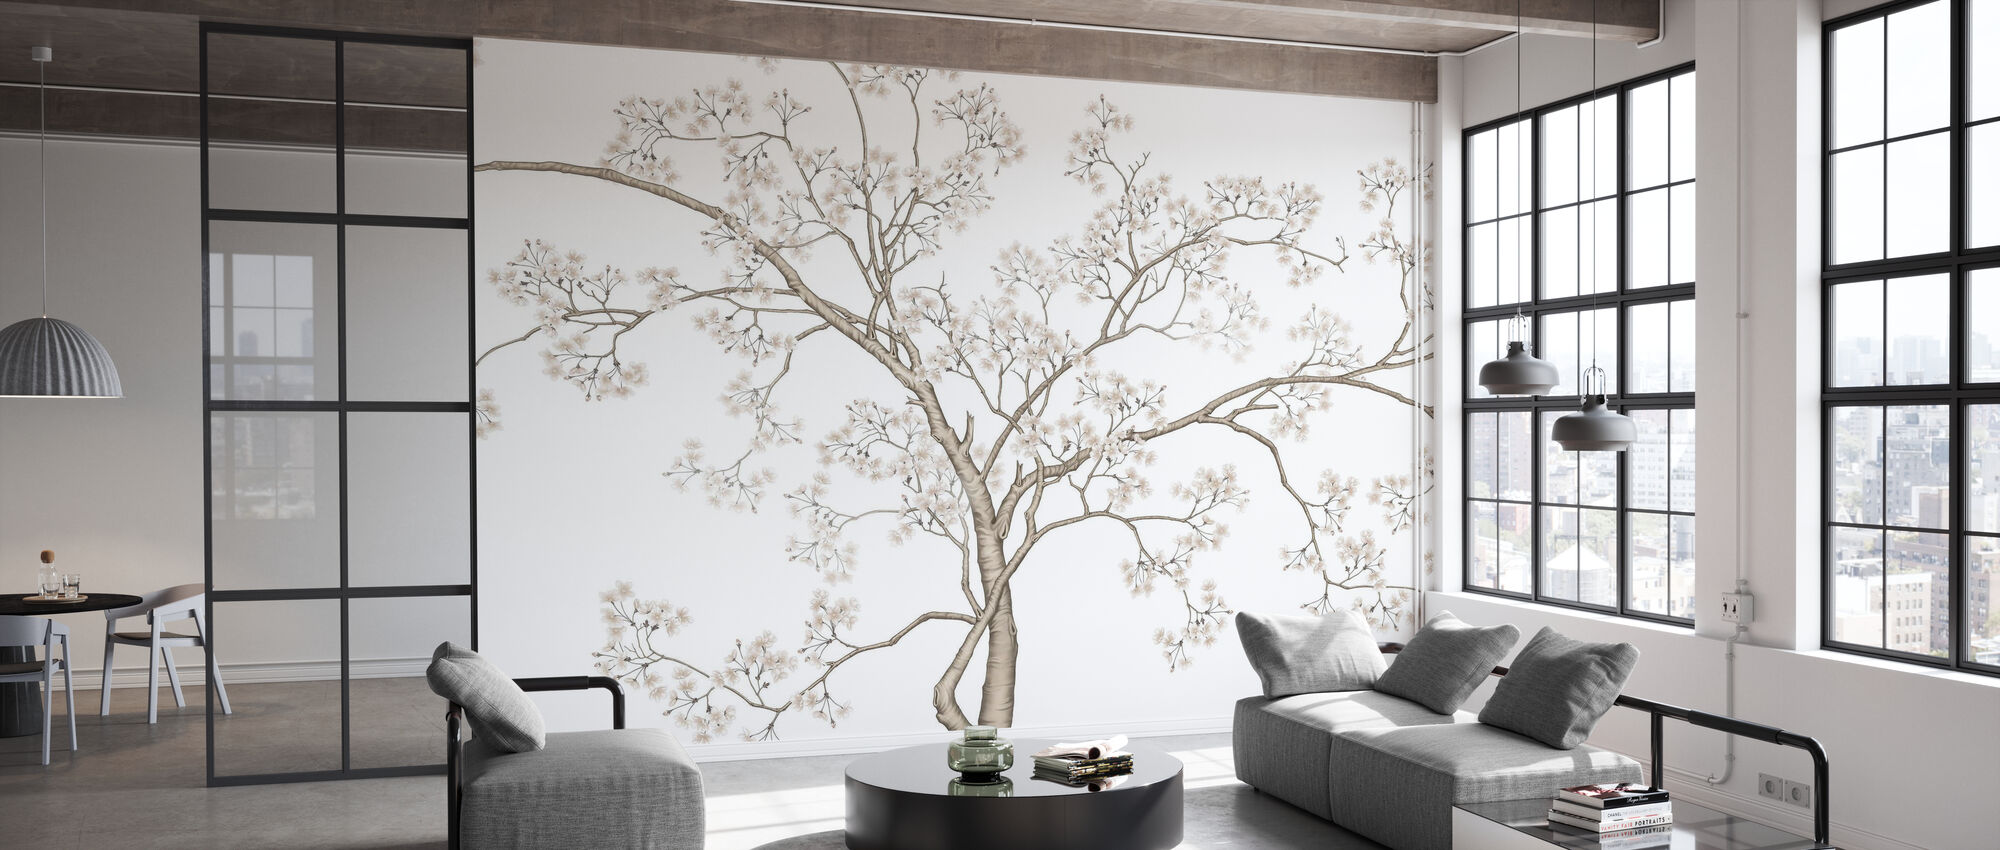 The Tree - Wallpaper - Office